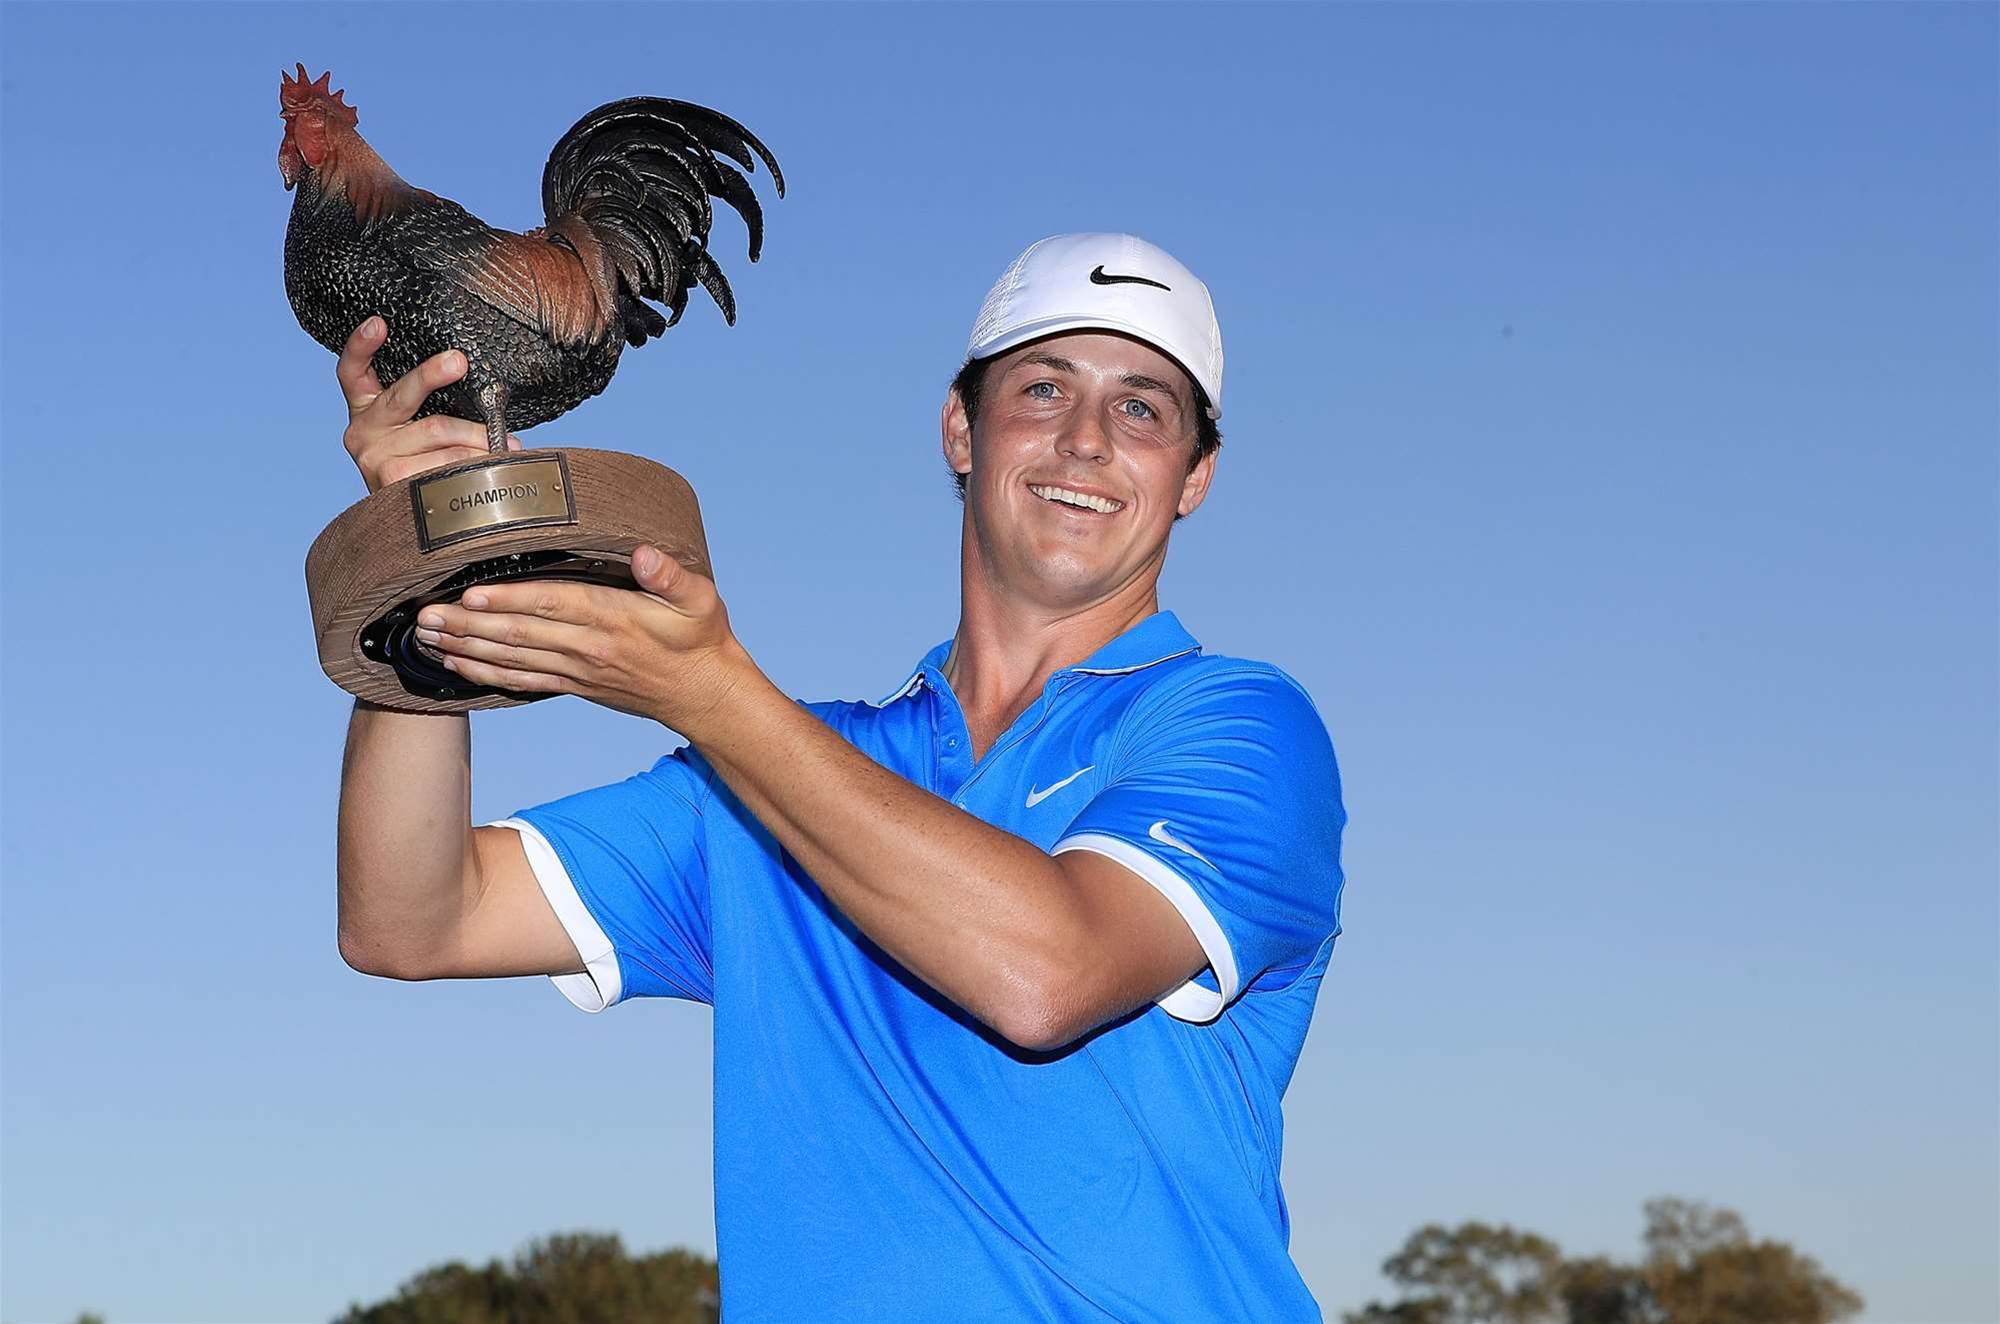 PGA Tour: Gribble ascends from obscurity to champ